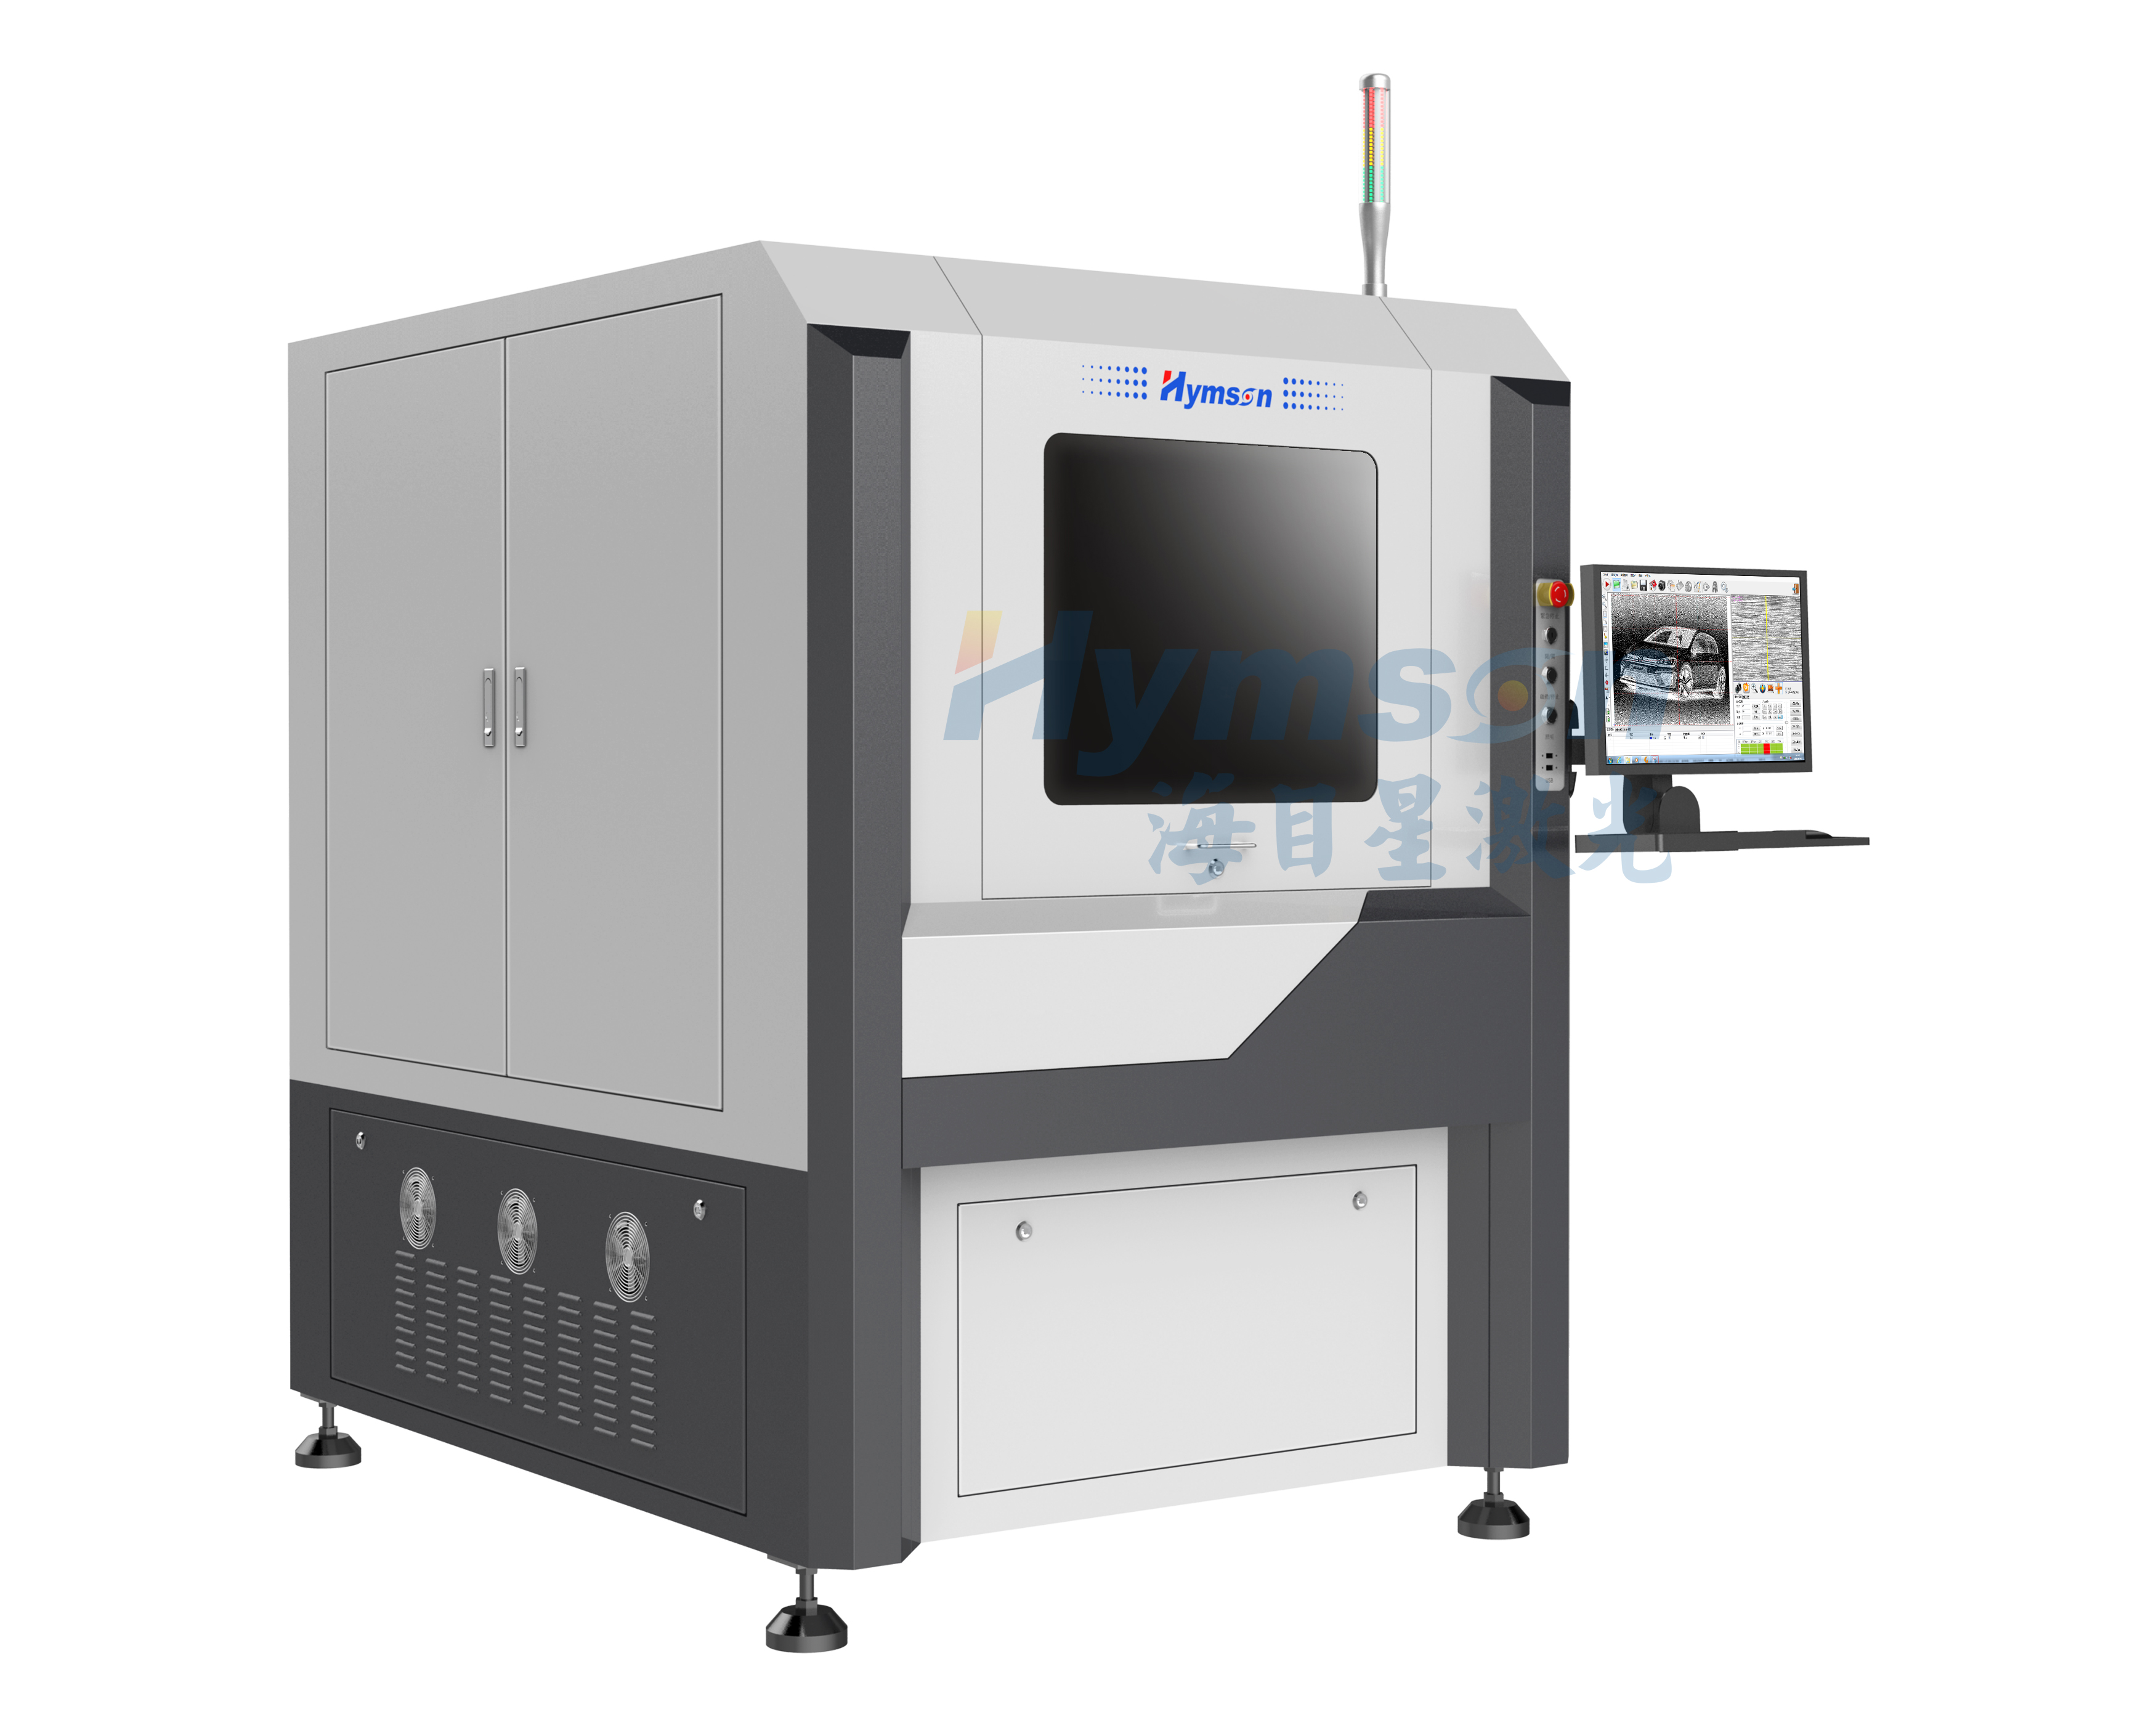 Picosecond laser micro machining cutting machines